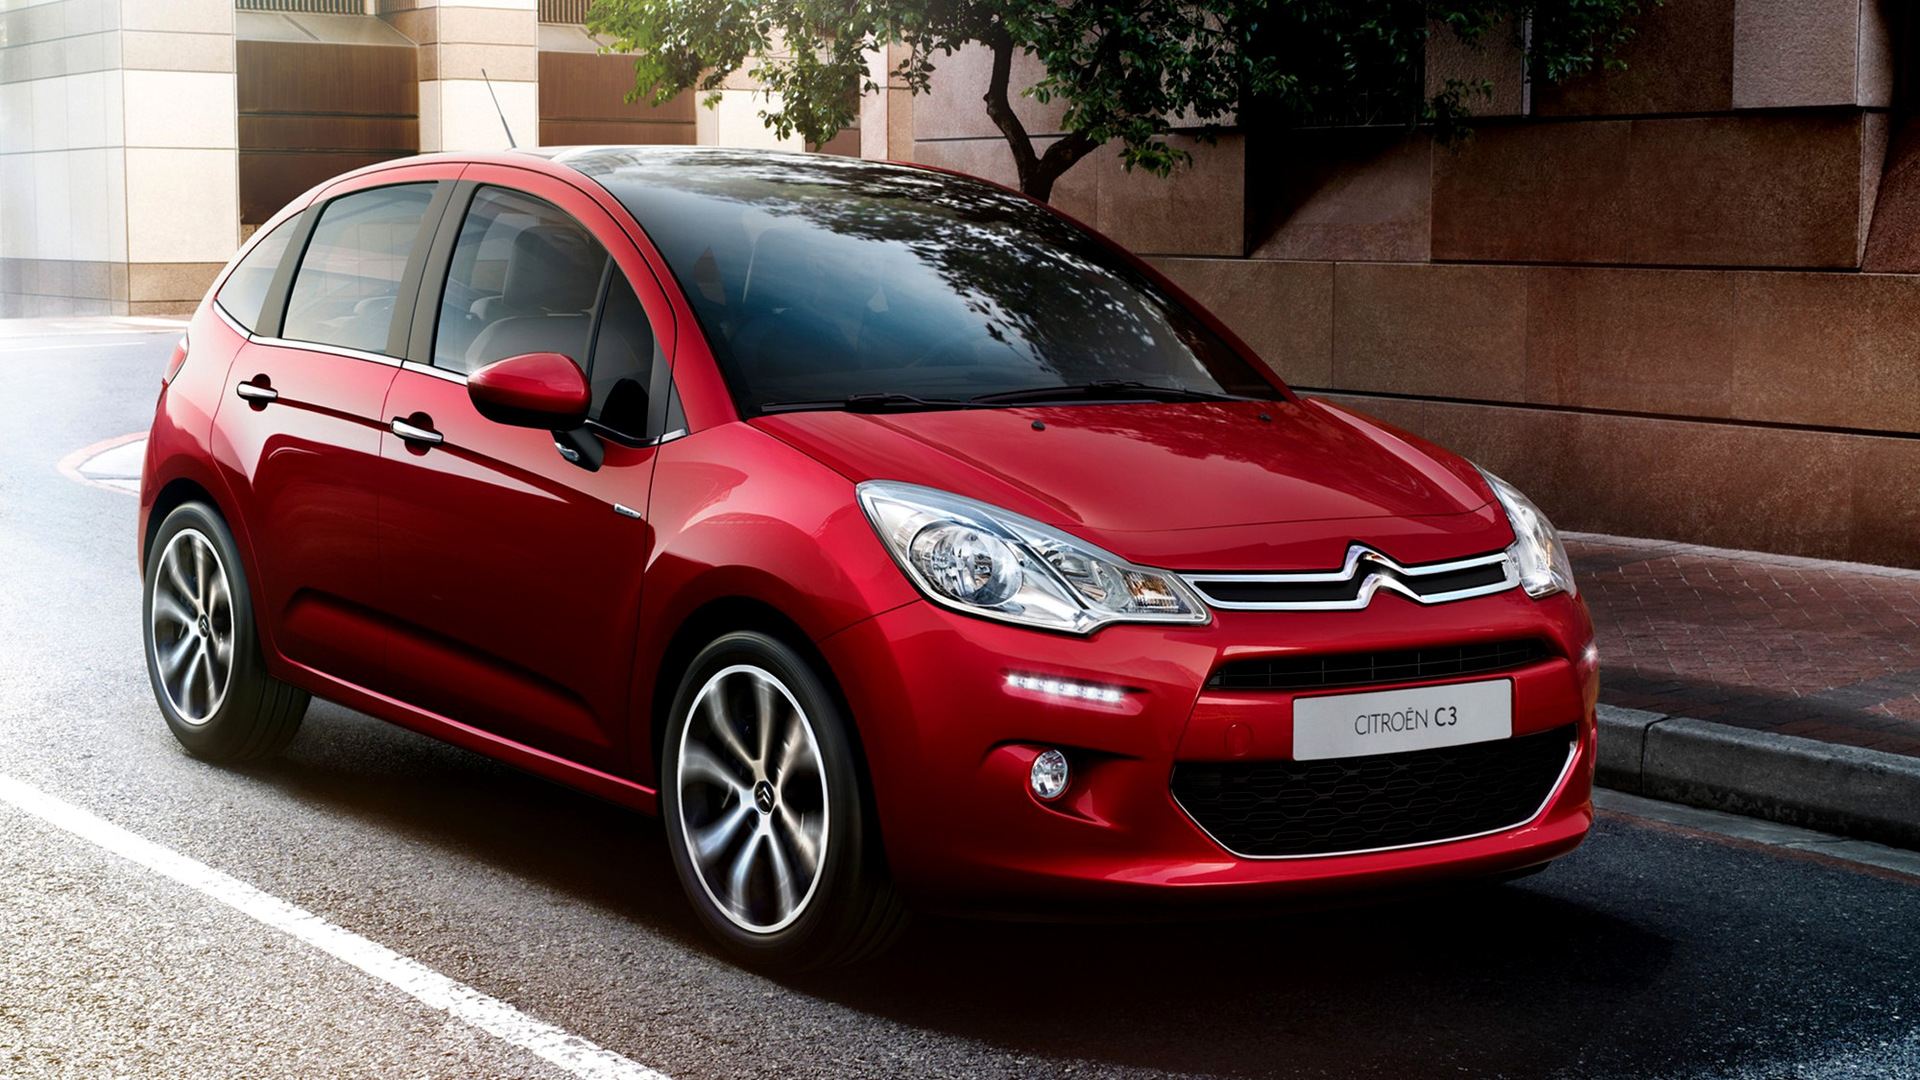 carpixel.net-2013-citroen-c3-9366-hd